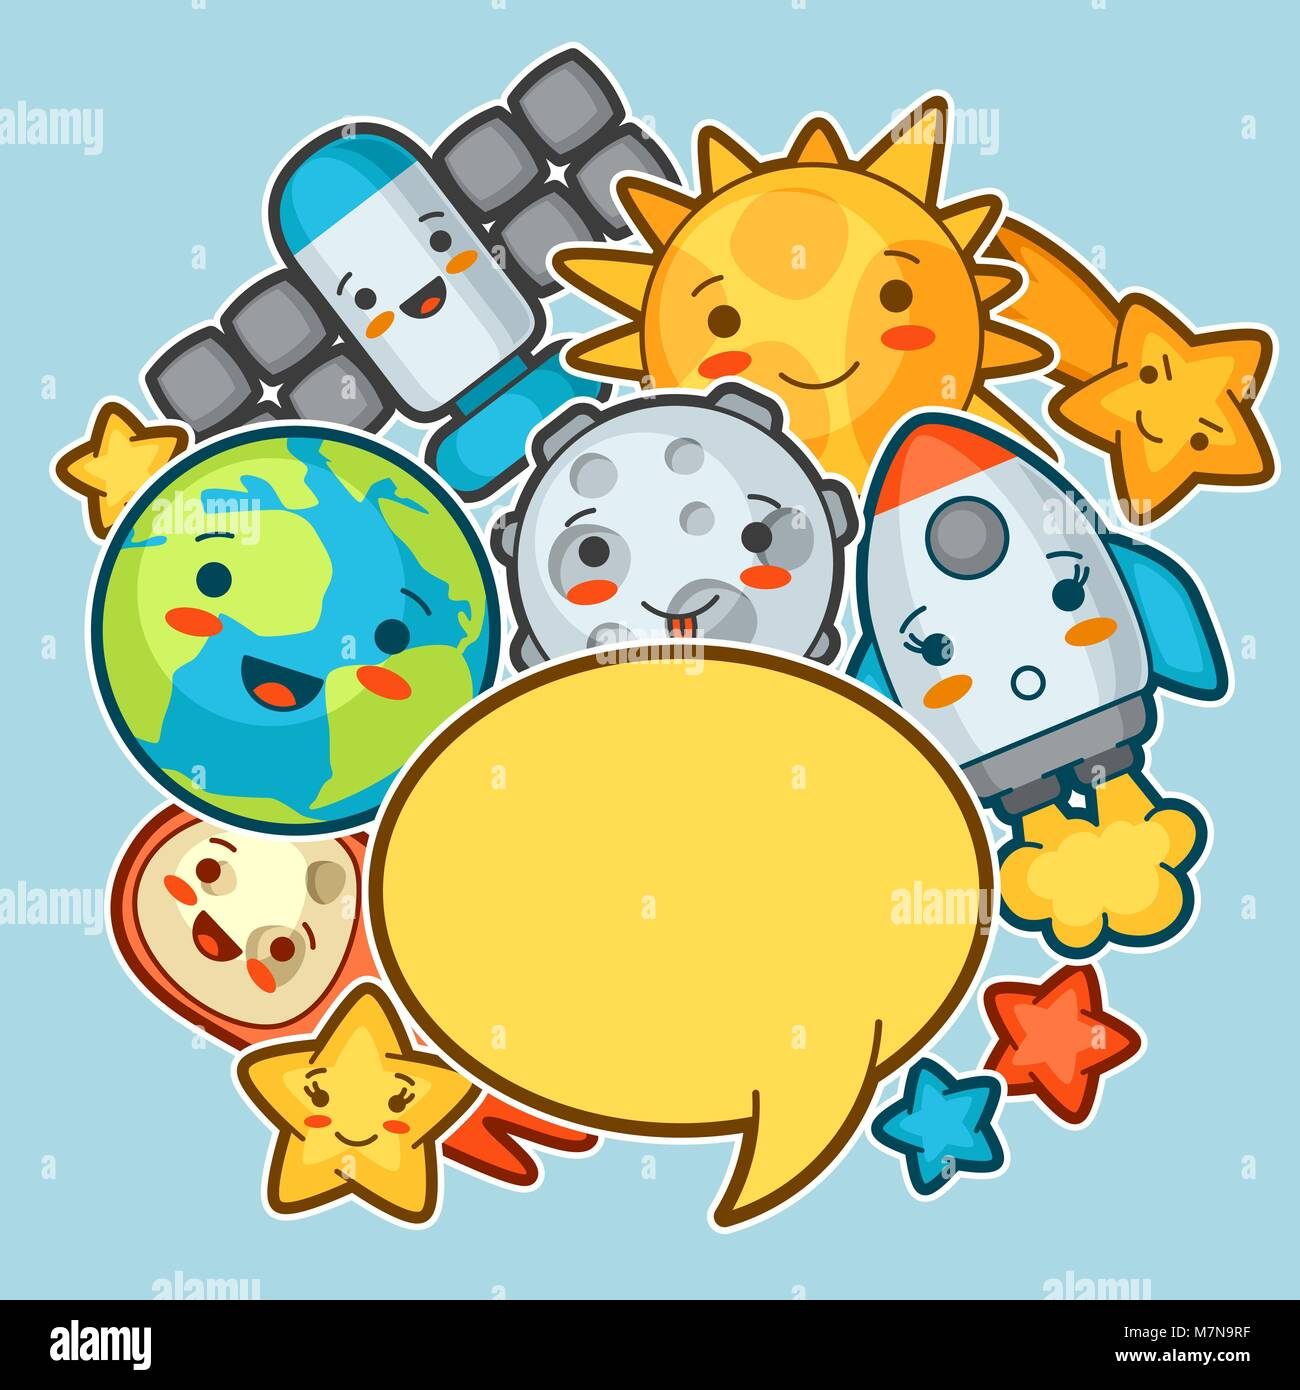 Kawaii space background. Doodles with pretty facial expression. Illustration of cartoon sun, earth, moon, rocket - Stock Image